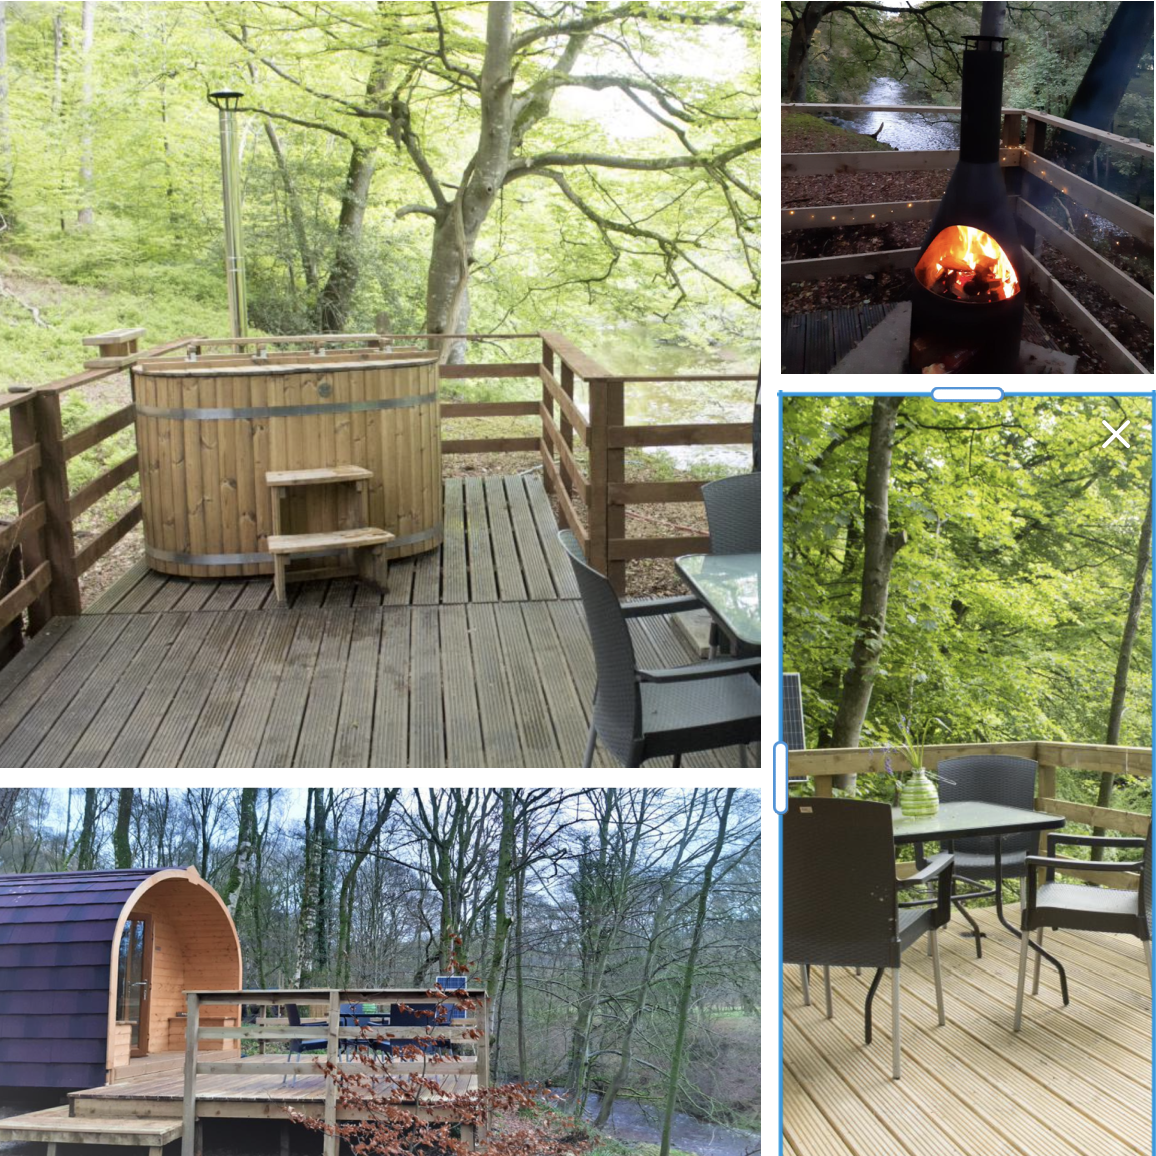 Cumbria eco friendly camping pods with hot tub and fire pit